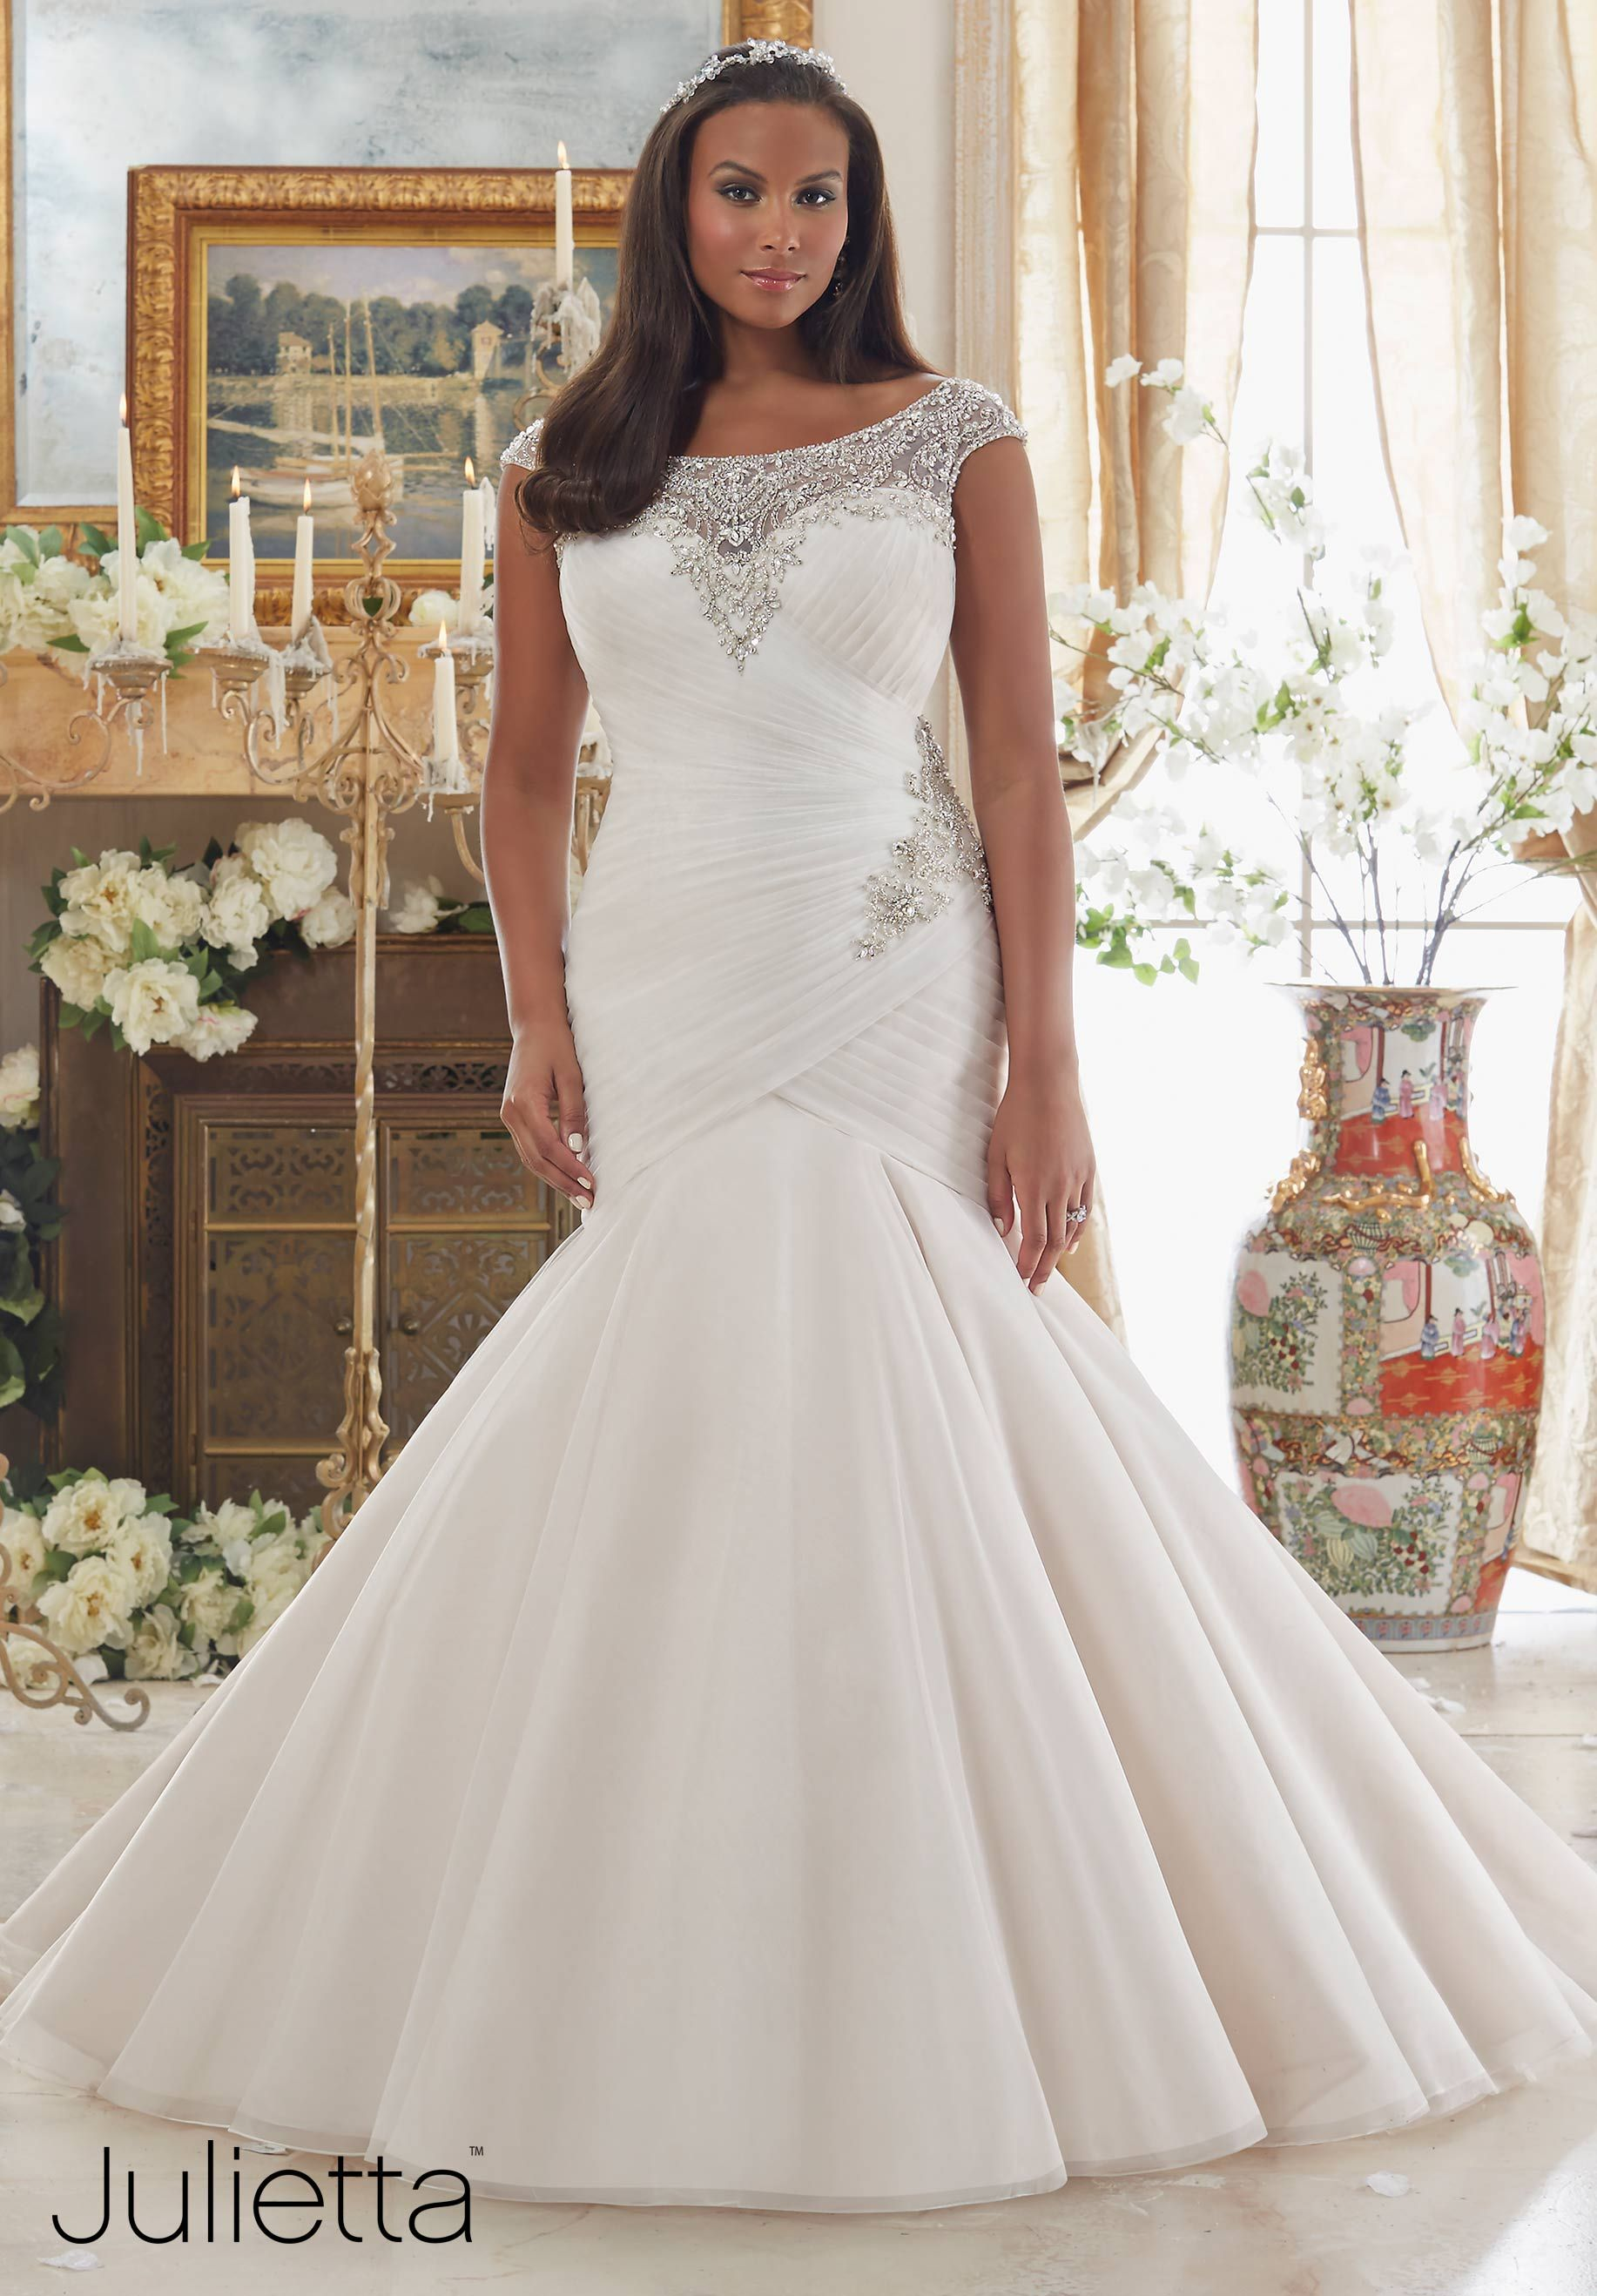 Wedding Dresses By Julietta featuring Dazzling Beaded Embroidery on Tulle Colors Available: White, Ivory, Ivory/Champagne